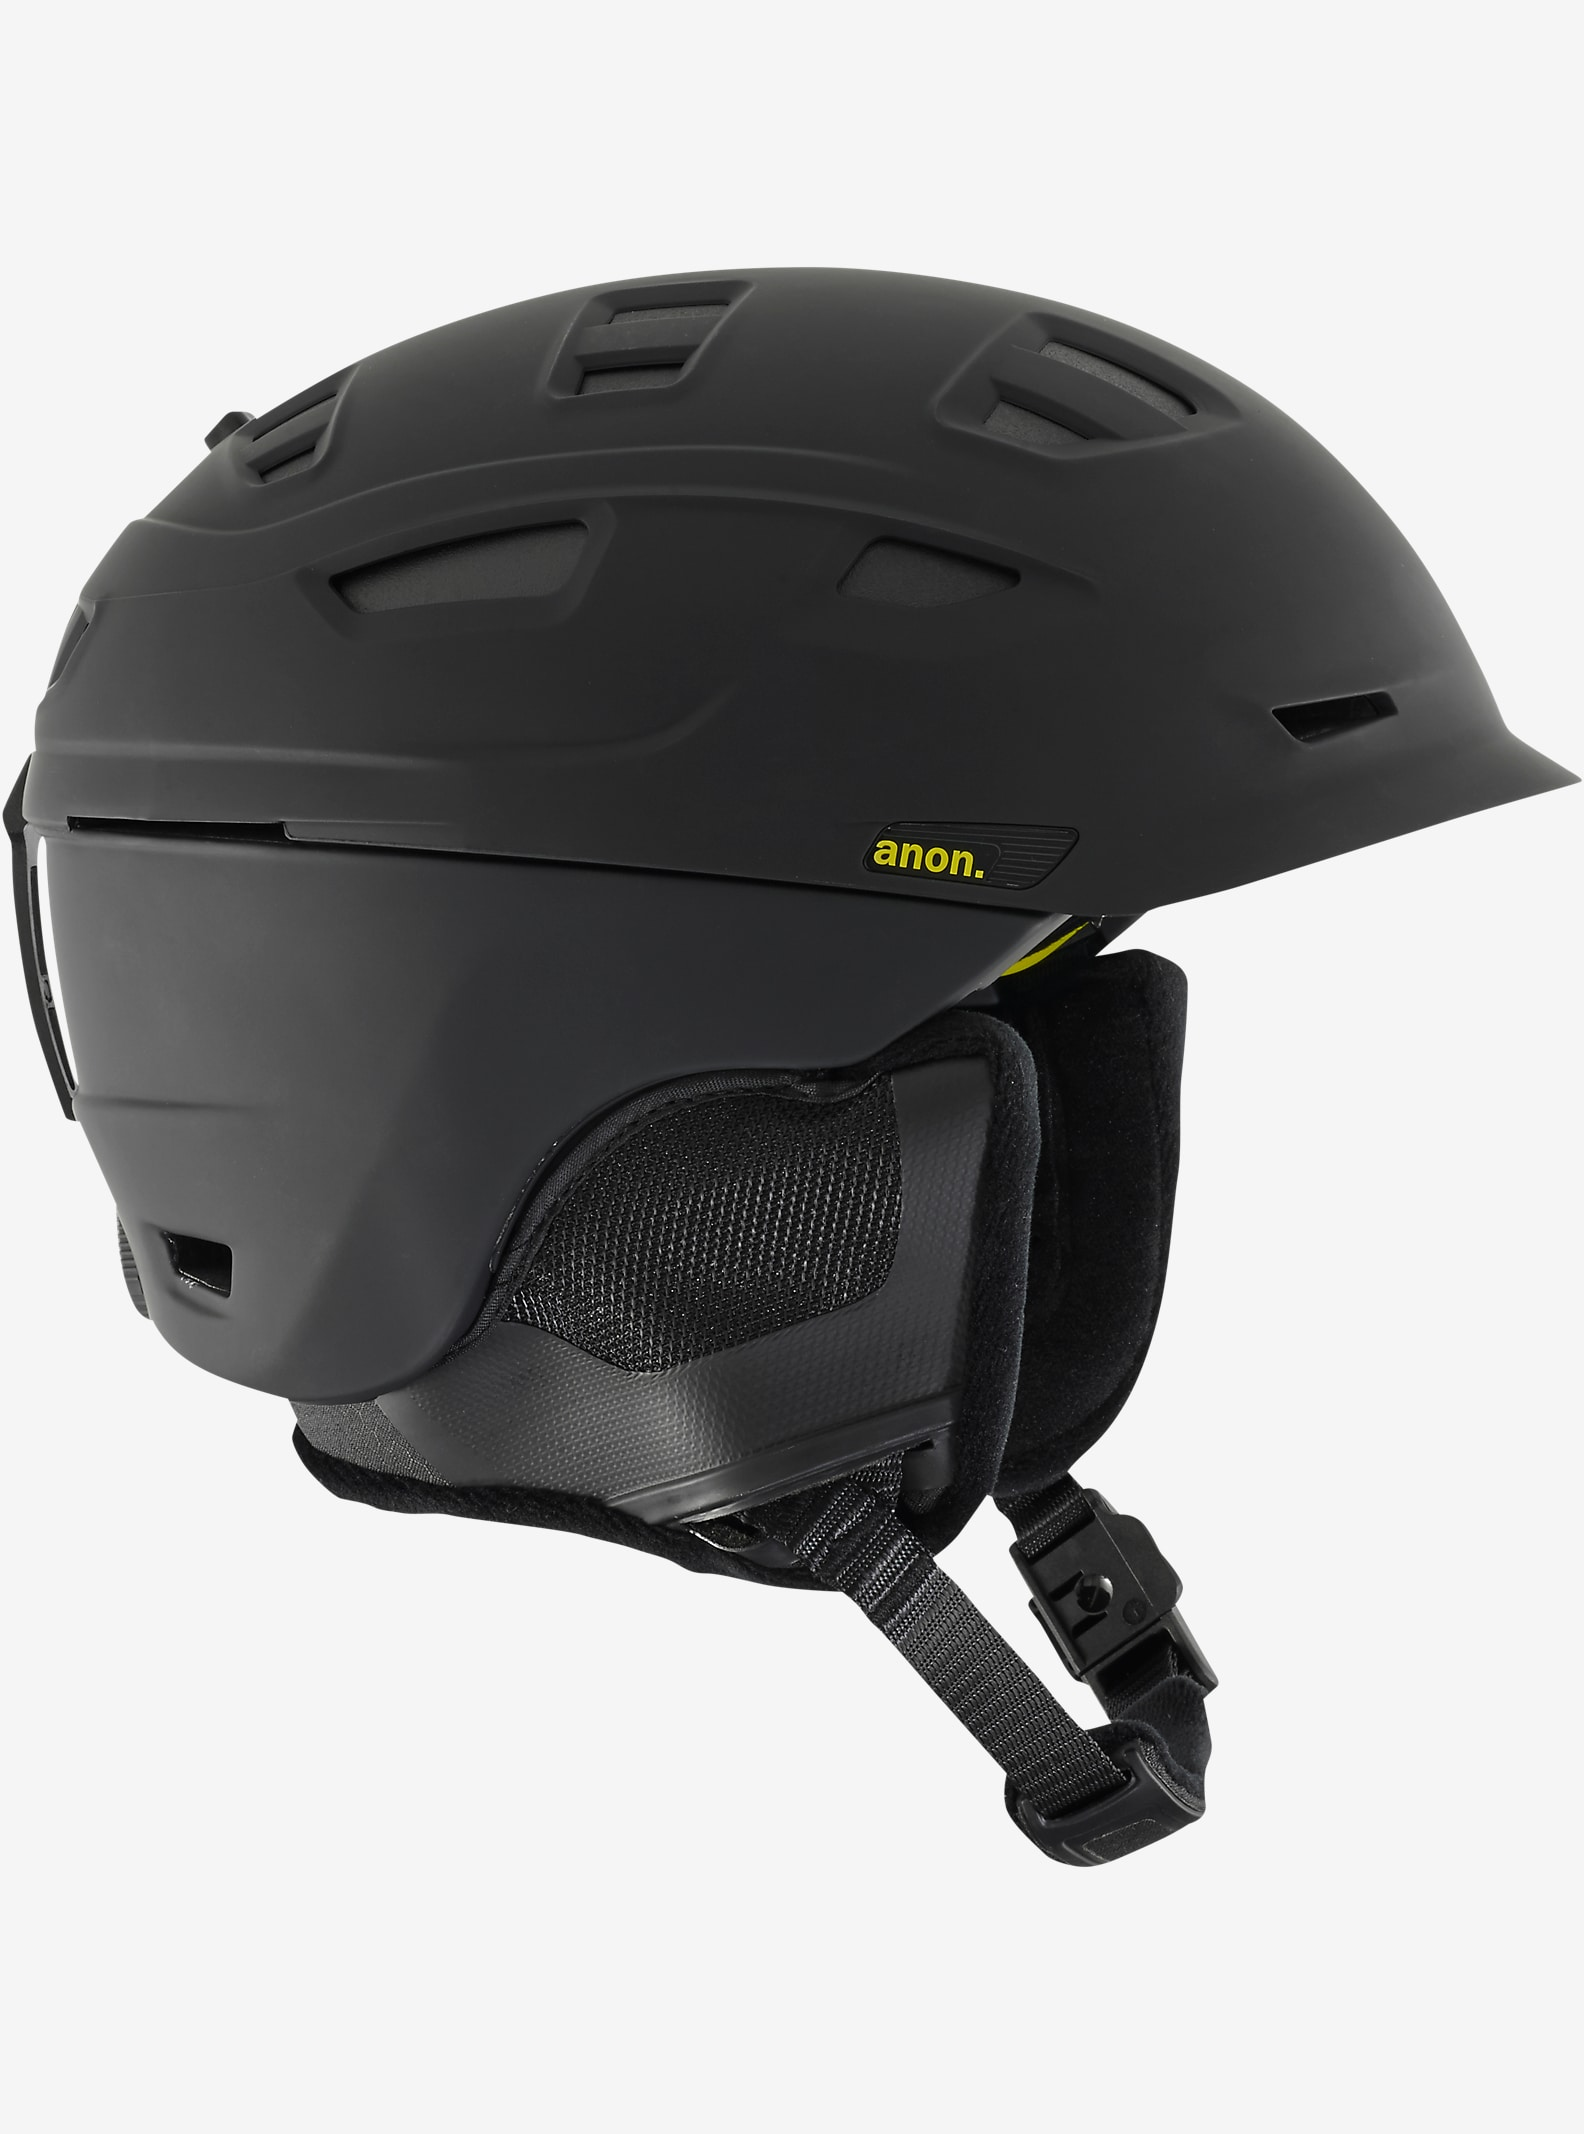 anon. Prime Helmet shown in Black